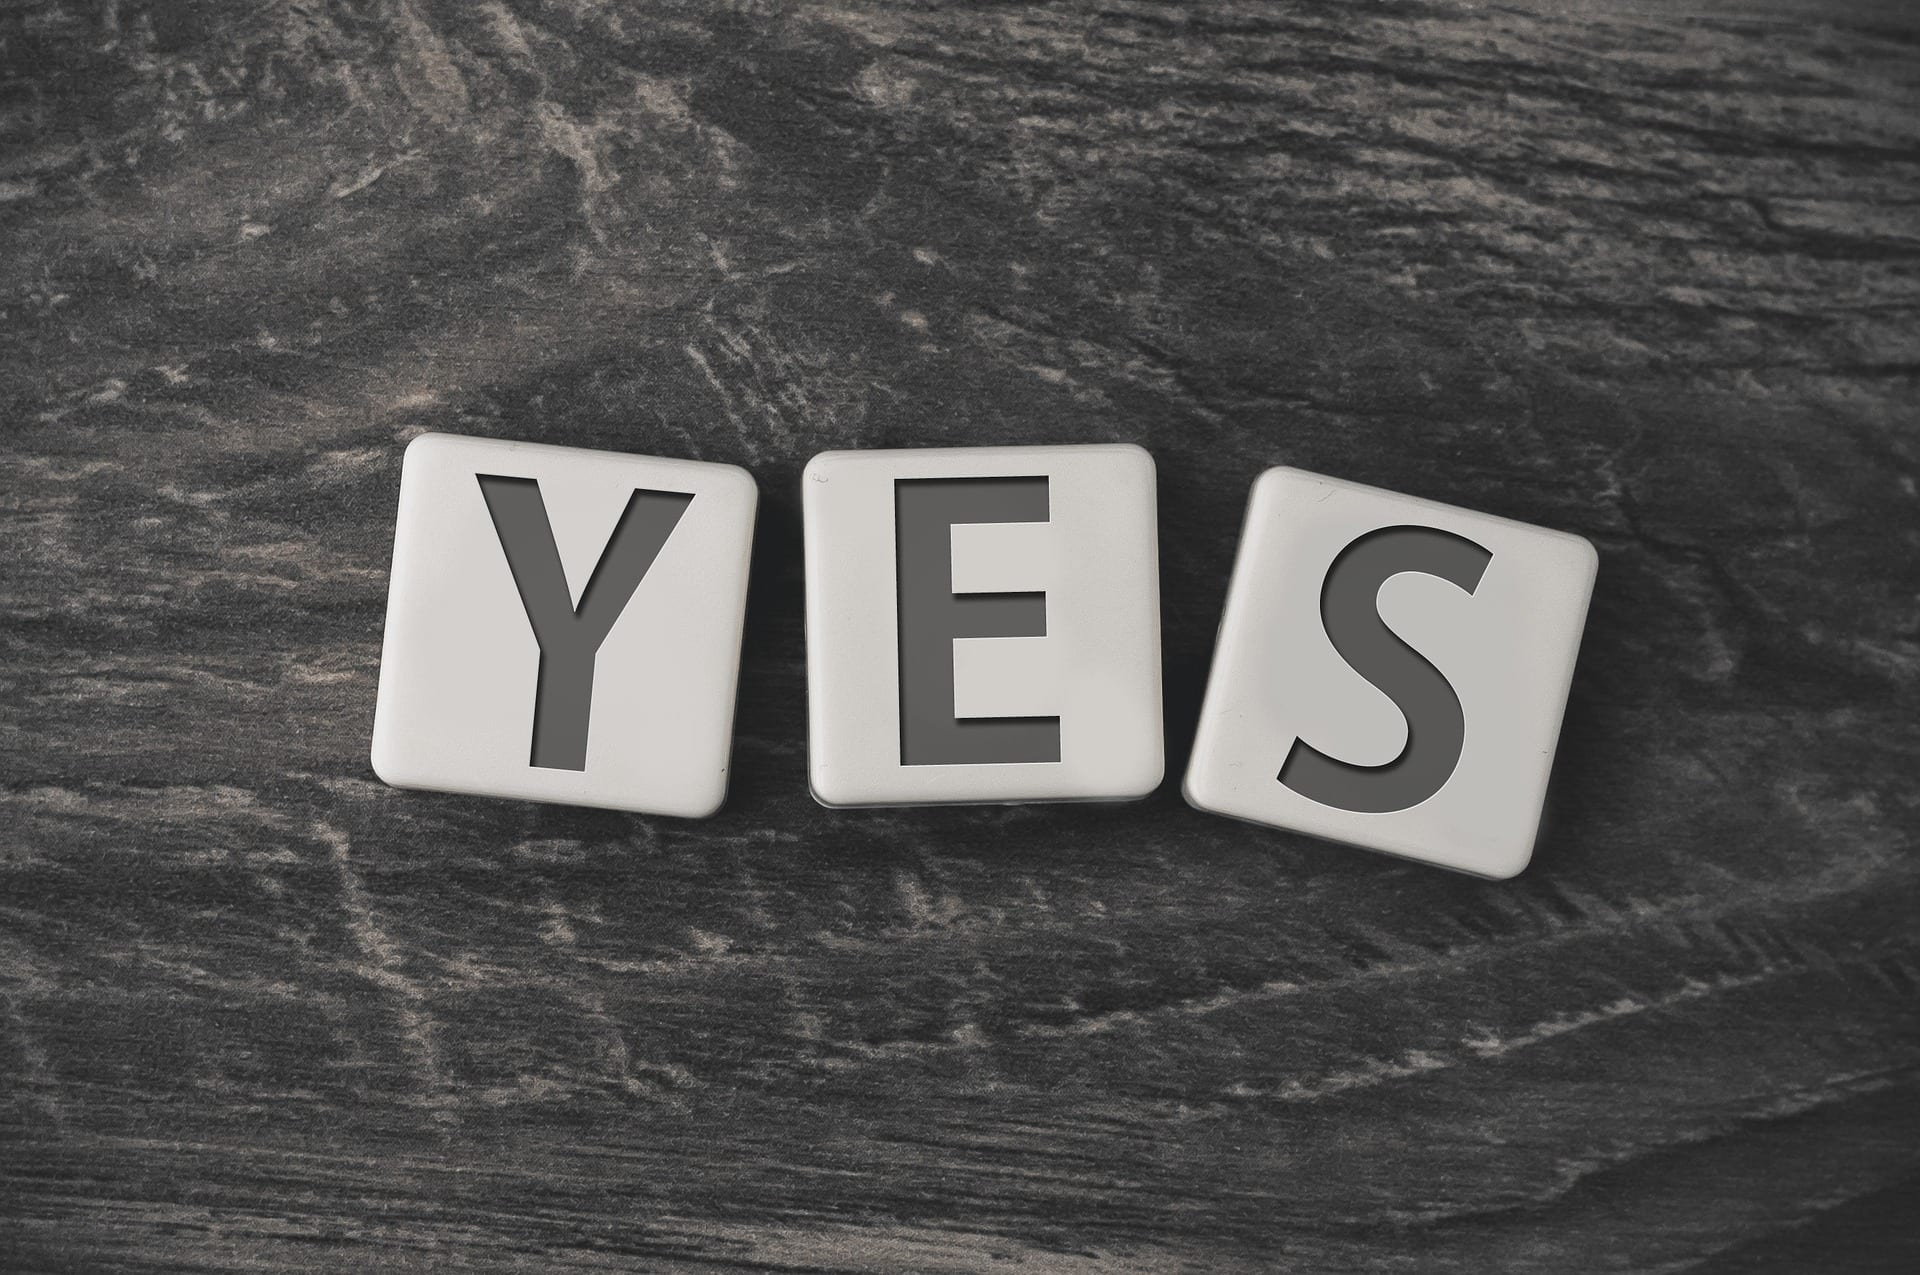 The Power of 'Yes' versus 'Yeah | Change My Life Coaching